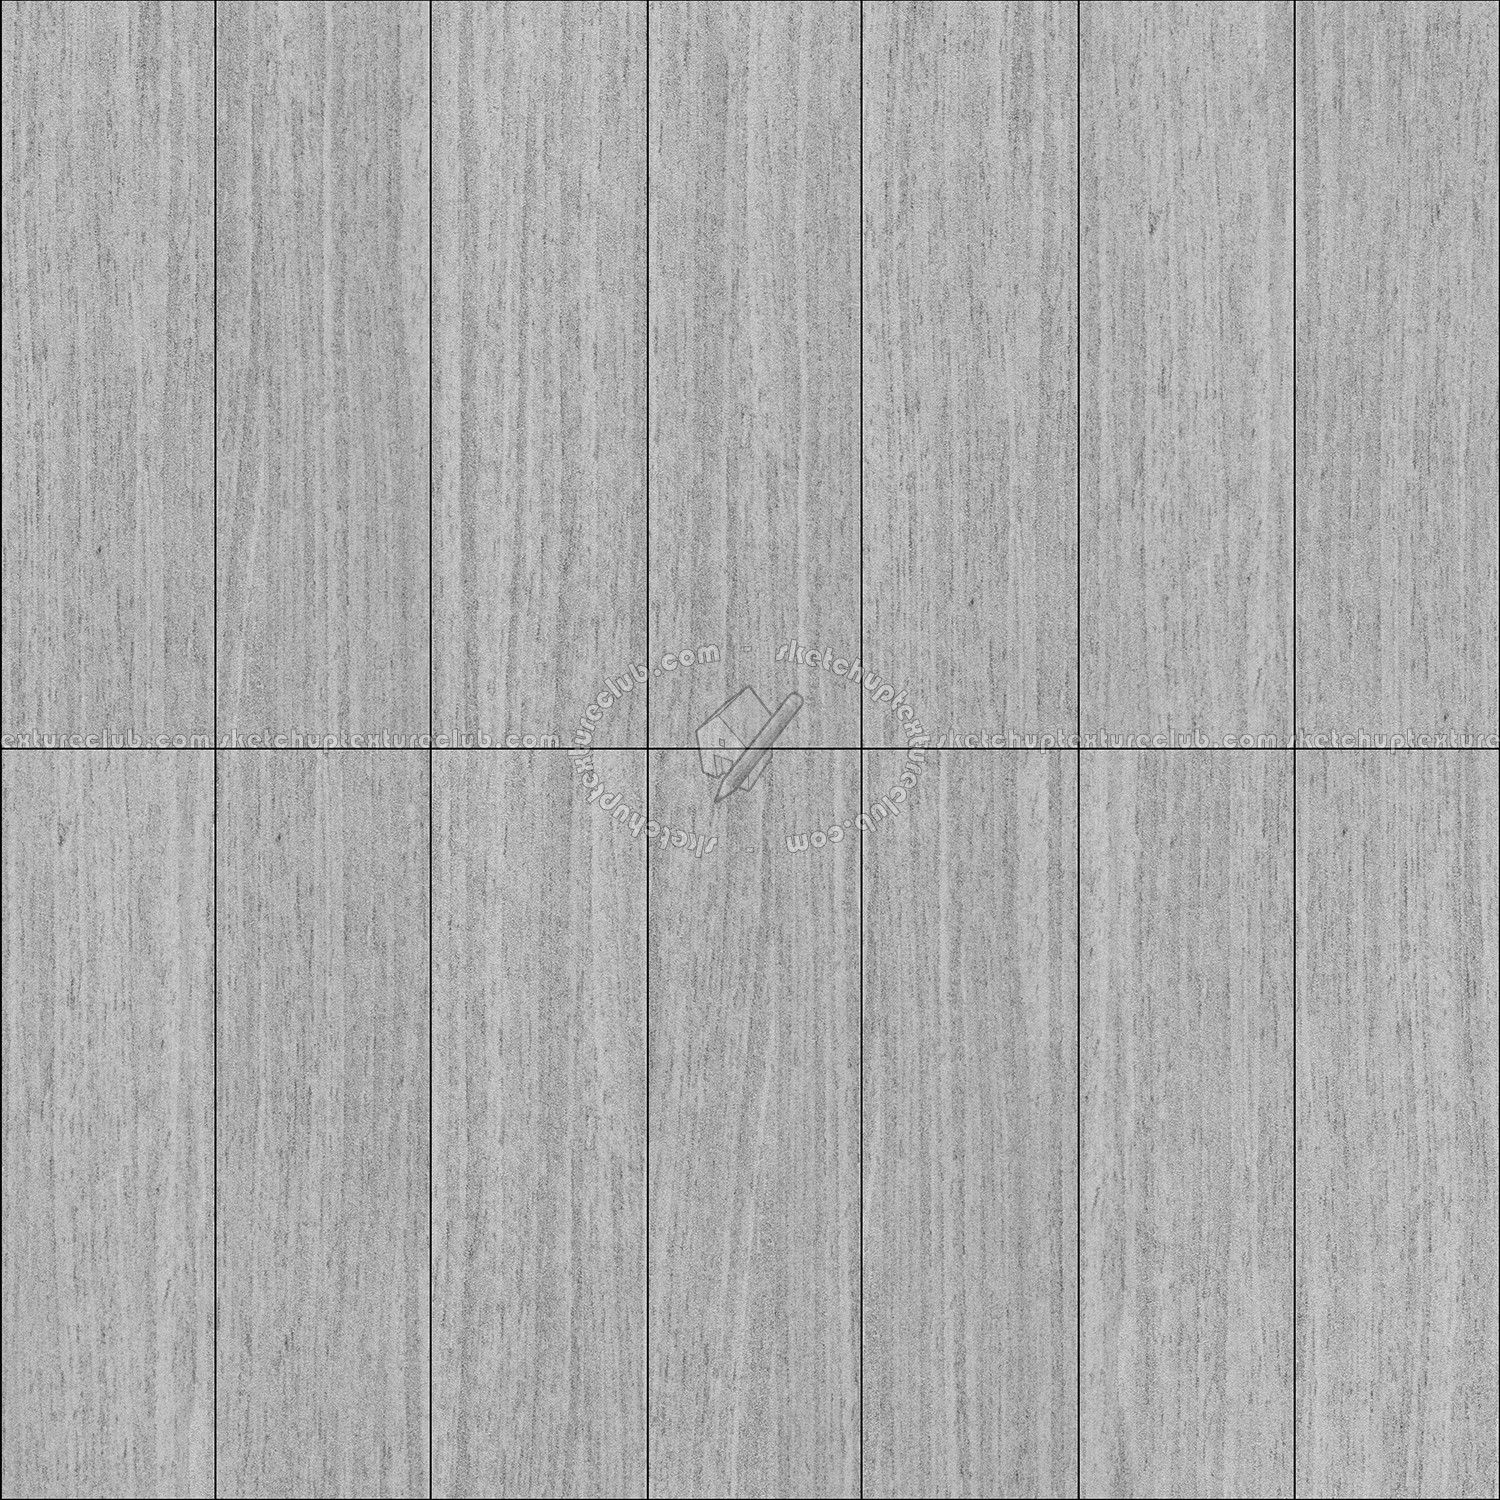 Design Industry Rectangular Tile Texture Seamless